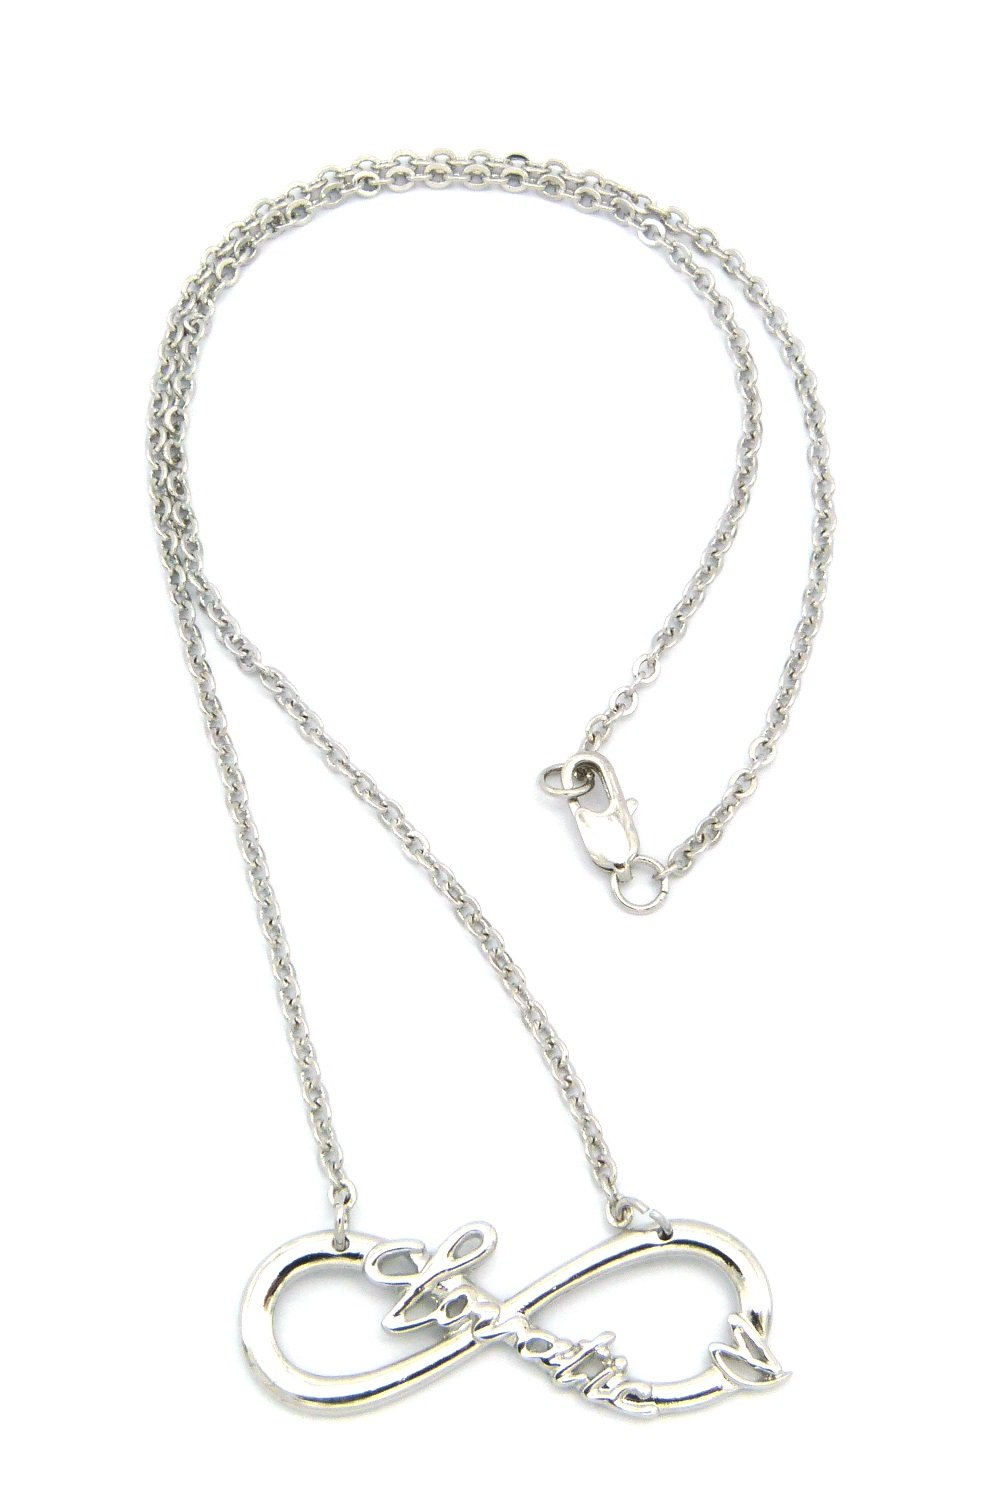 Lovatic (TM) Celebrity Fans 18' Infinity Heart Necklace - Silver Tone XC468R